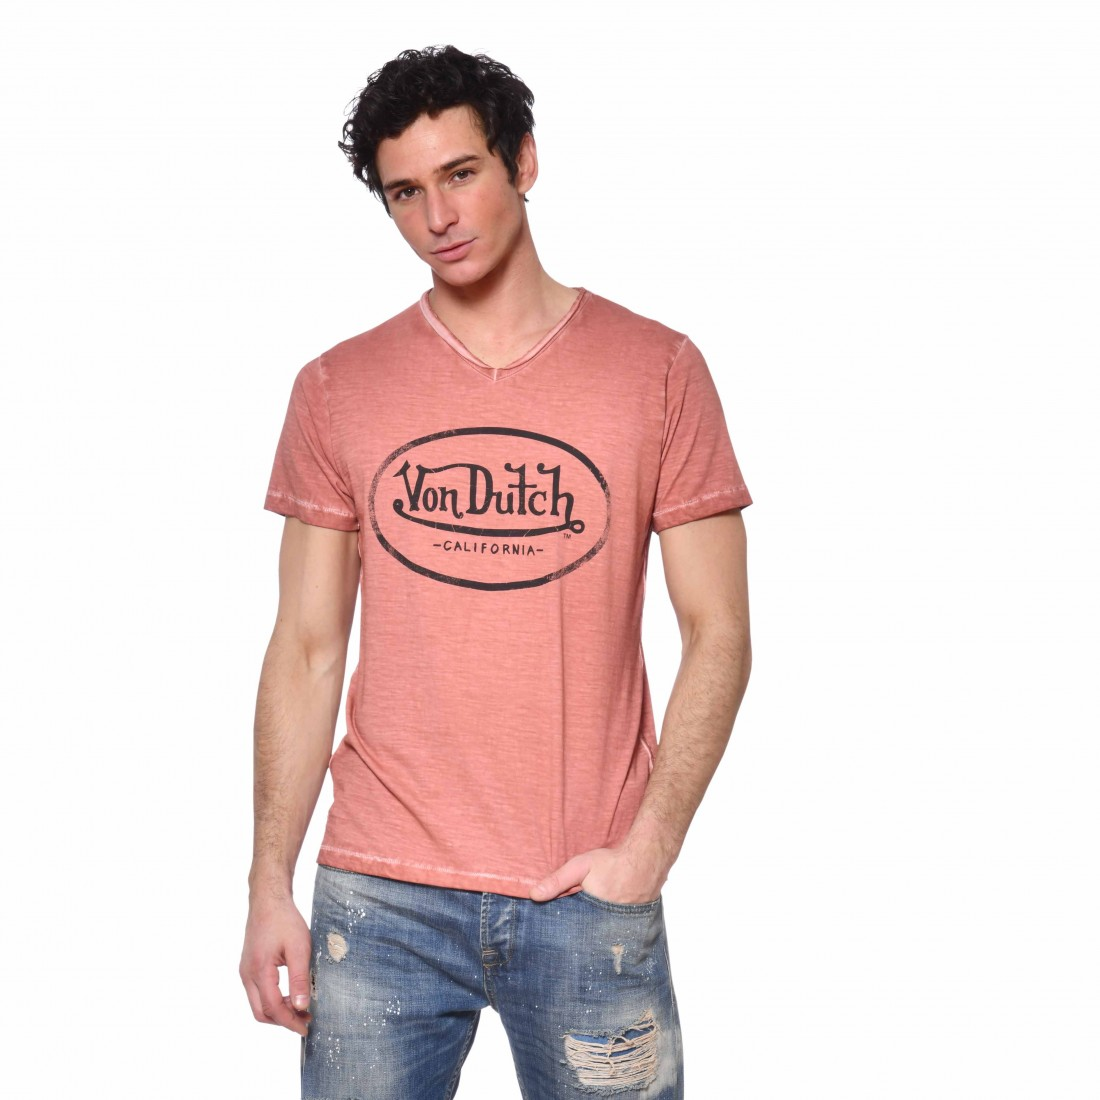 T-Shirt Von Dutch homme Col en V Ron vue de face